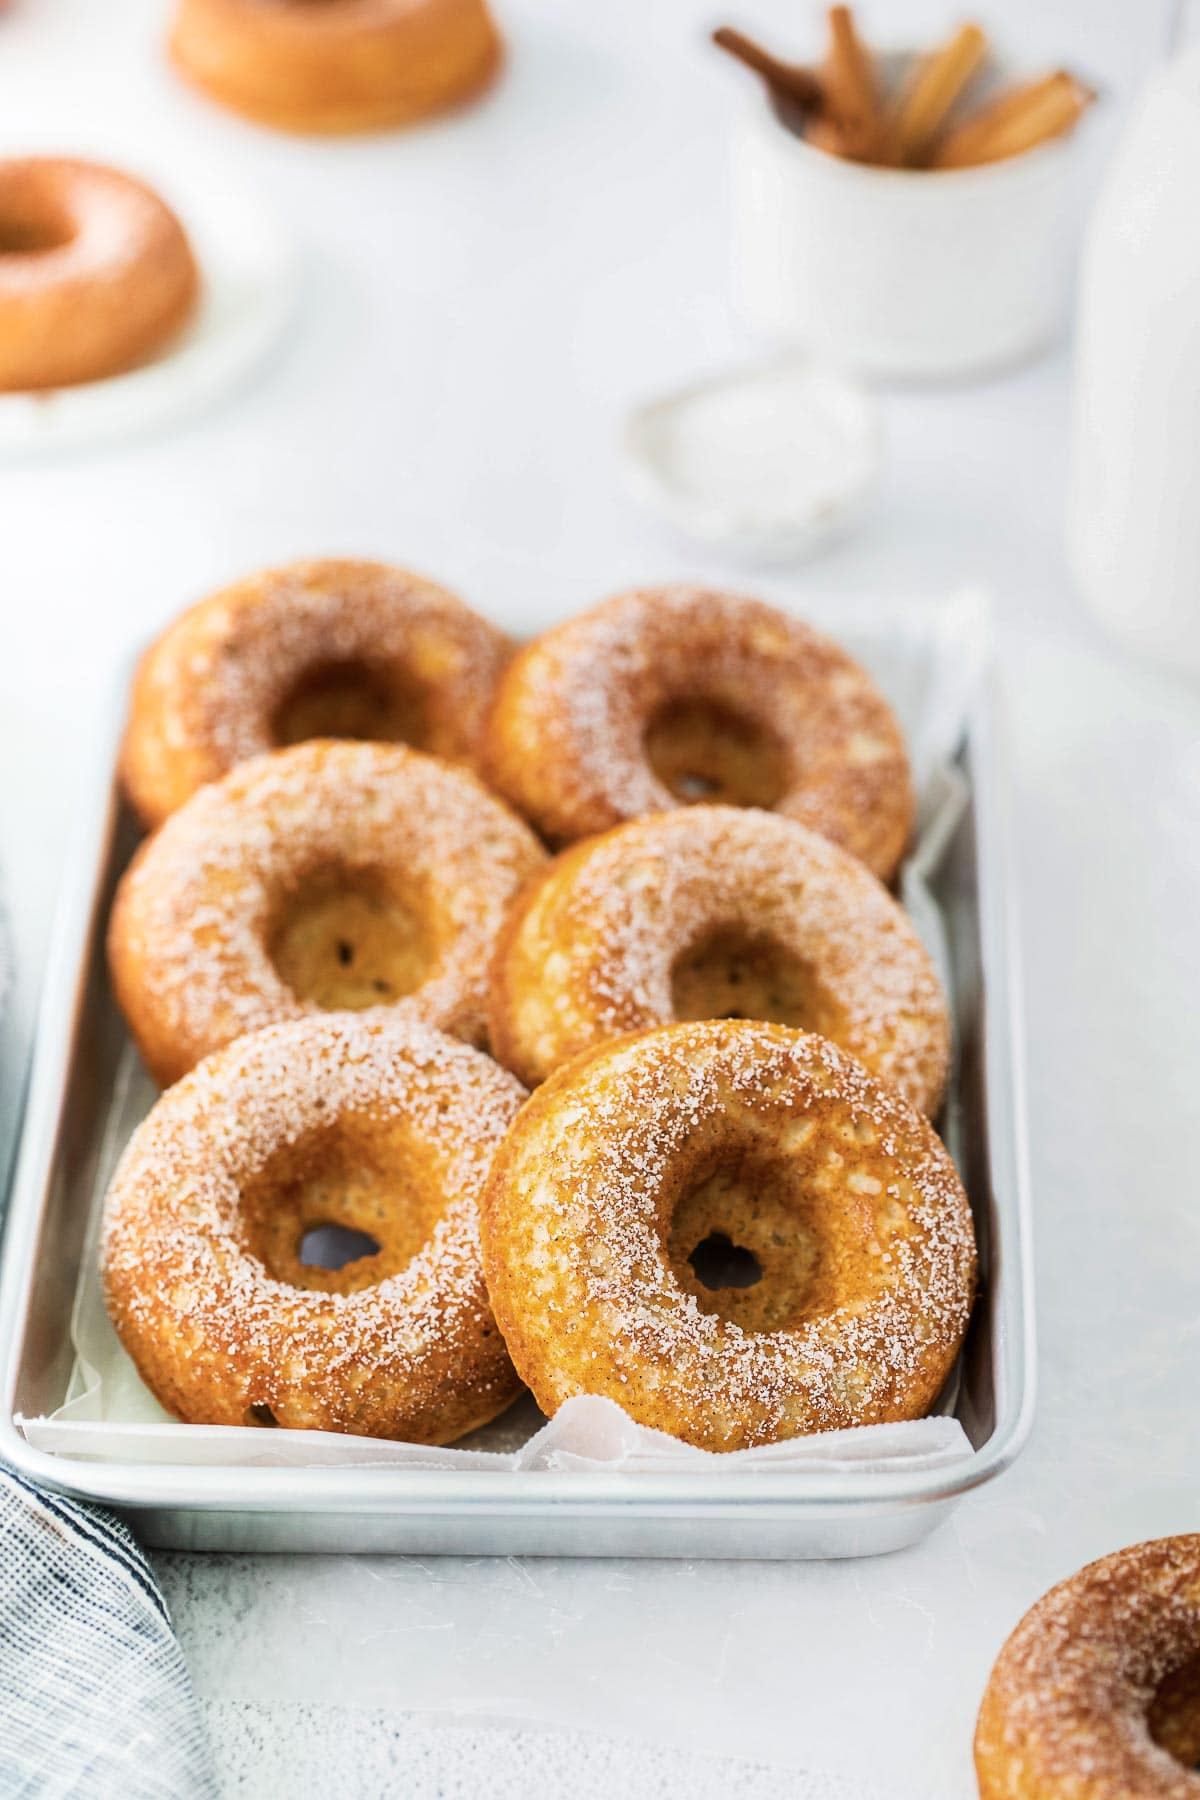 closeup of several baked donuts on a small silver tray